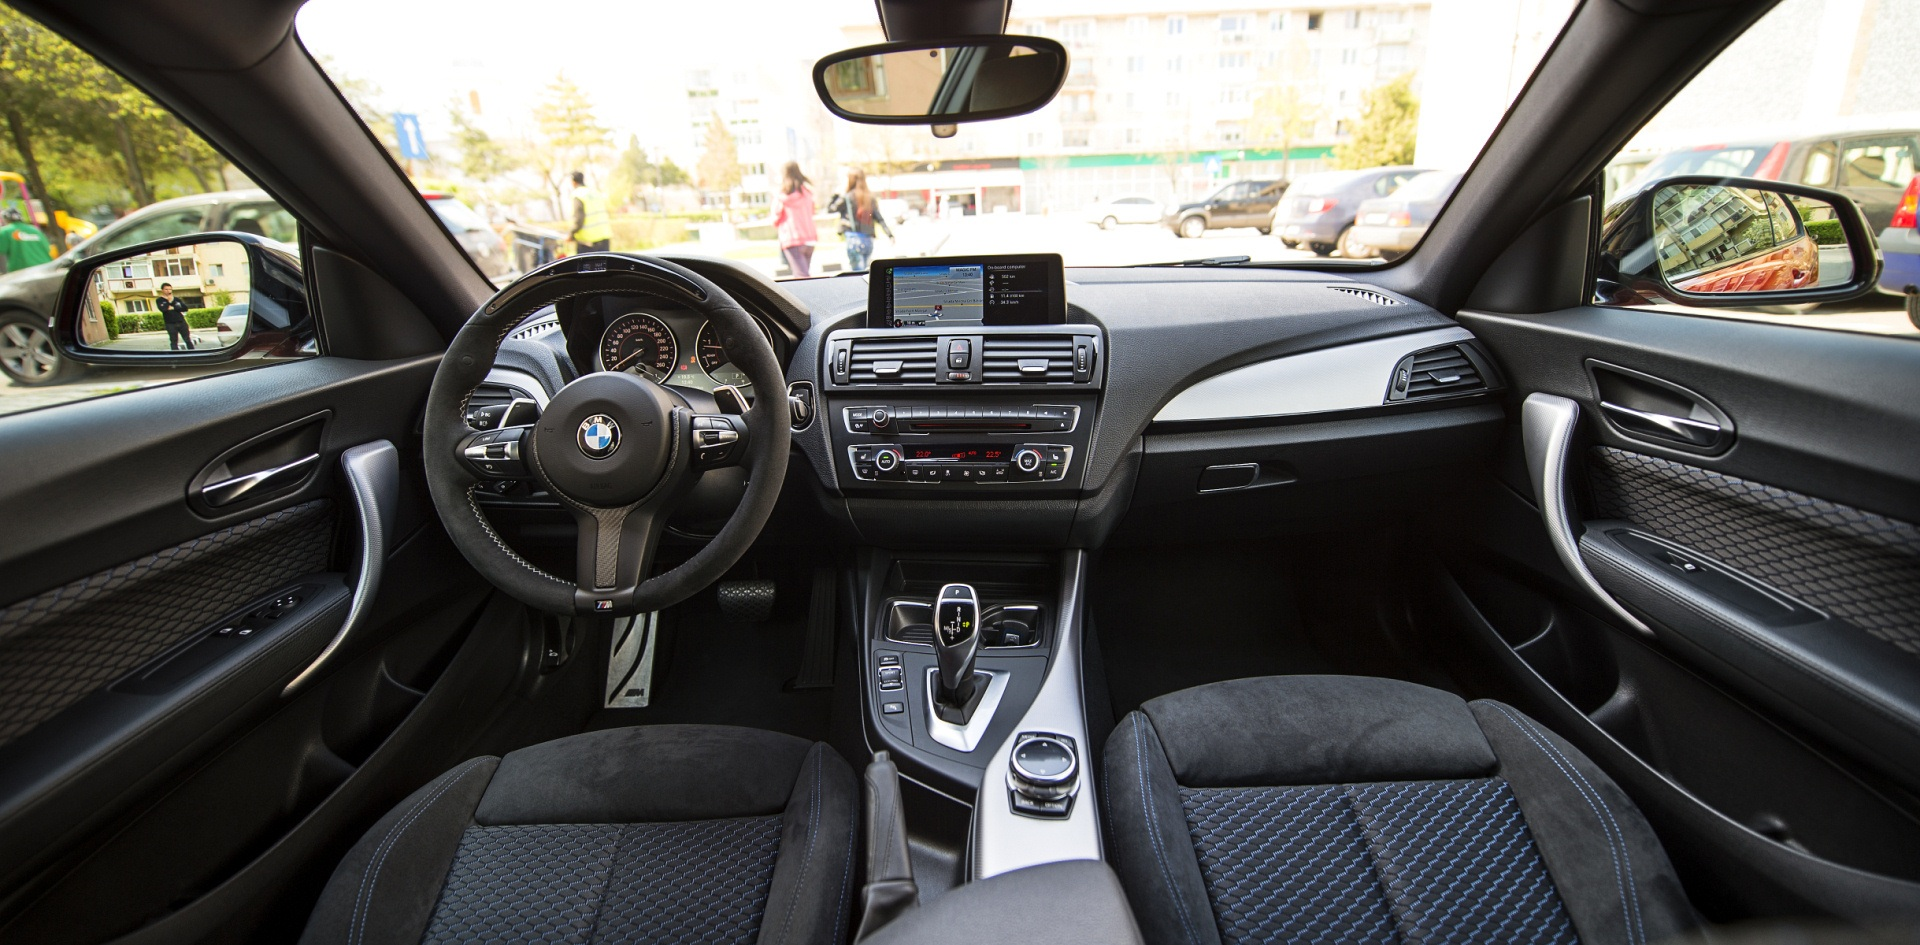 2014 Bmw M235i Front Interior (Photo 4 of 8)